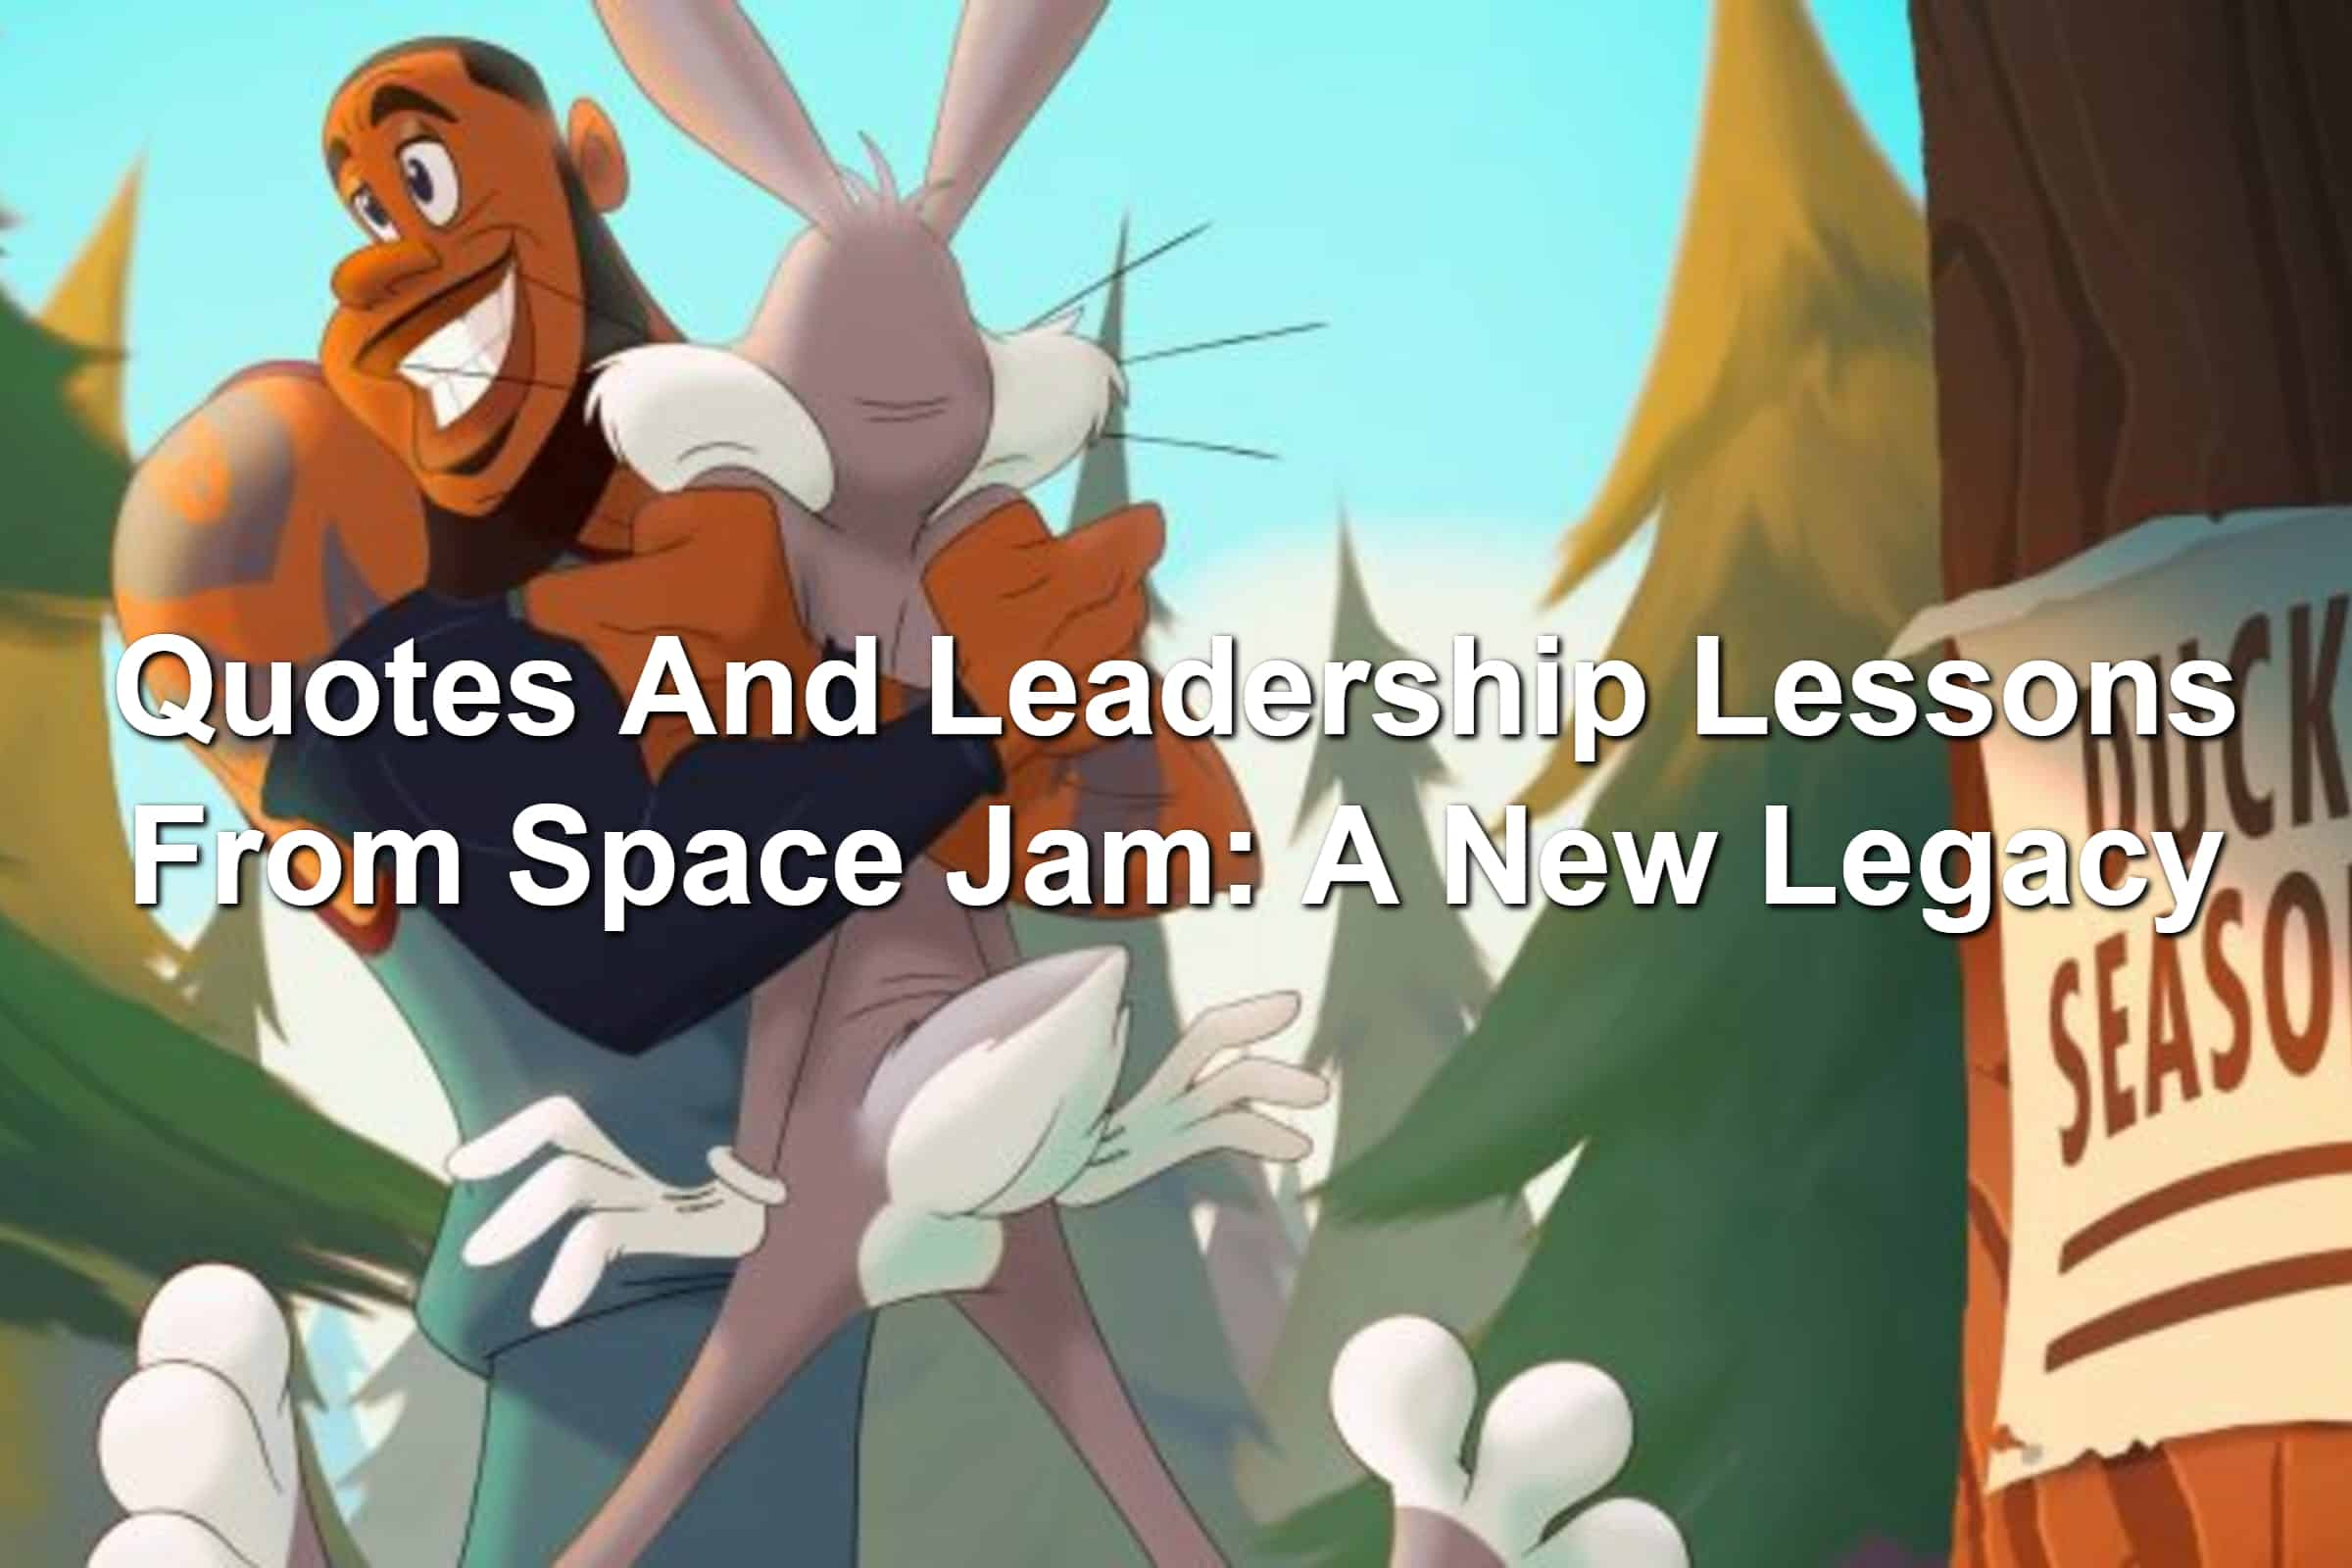 LeBron James hugging Bugs Bunny in Space Jam: A New Legacy